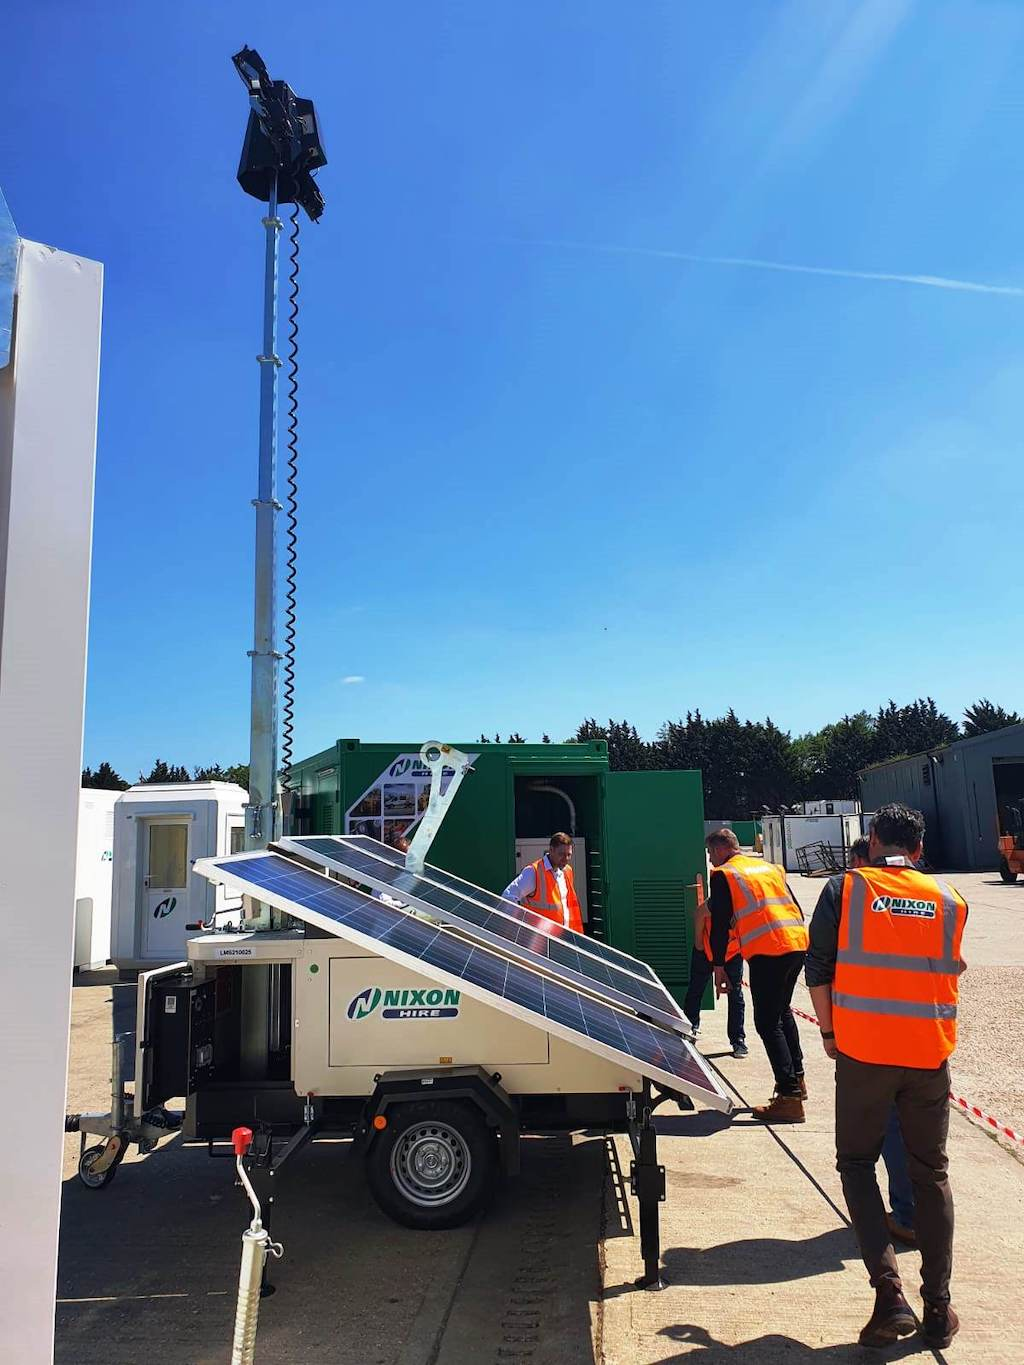 Nixon Hire invests in emission-free lighting towers